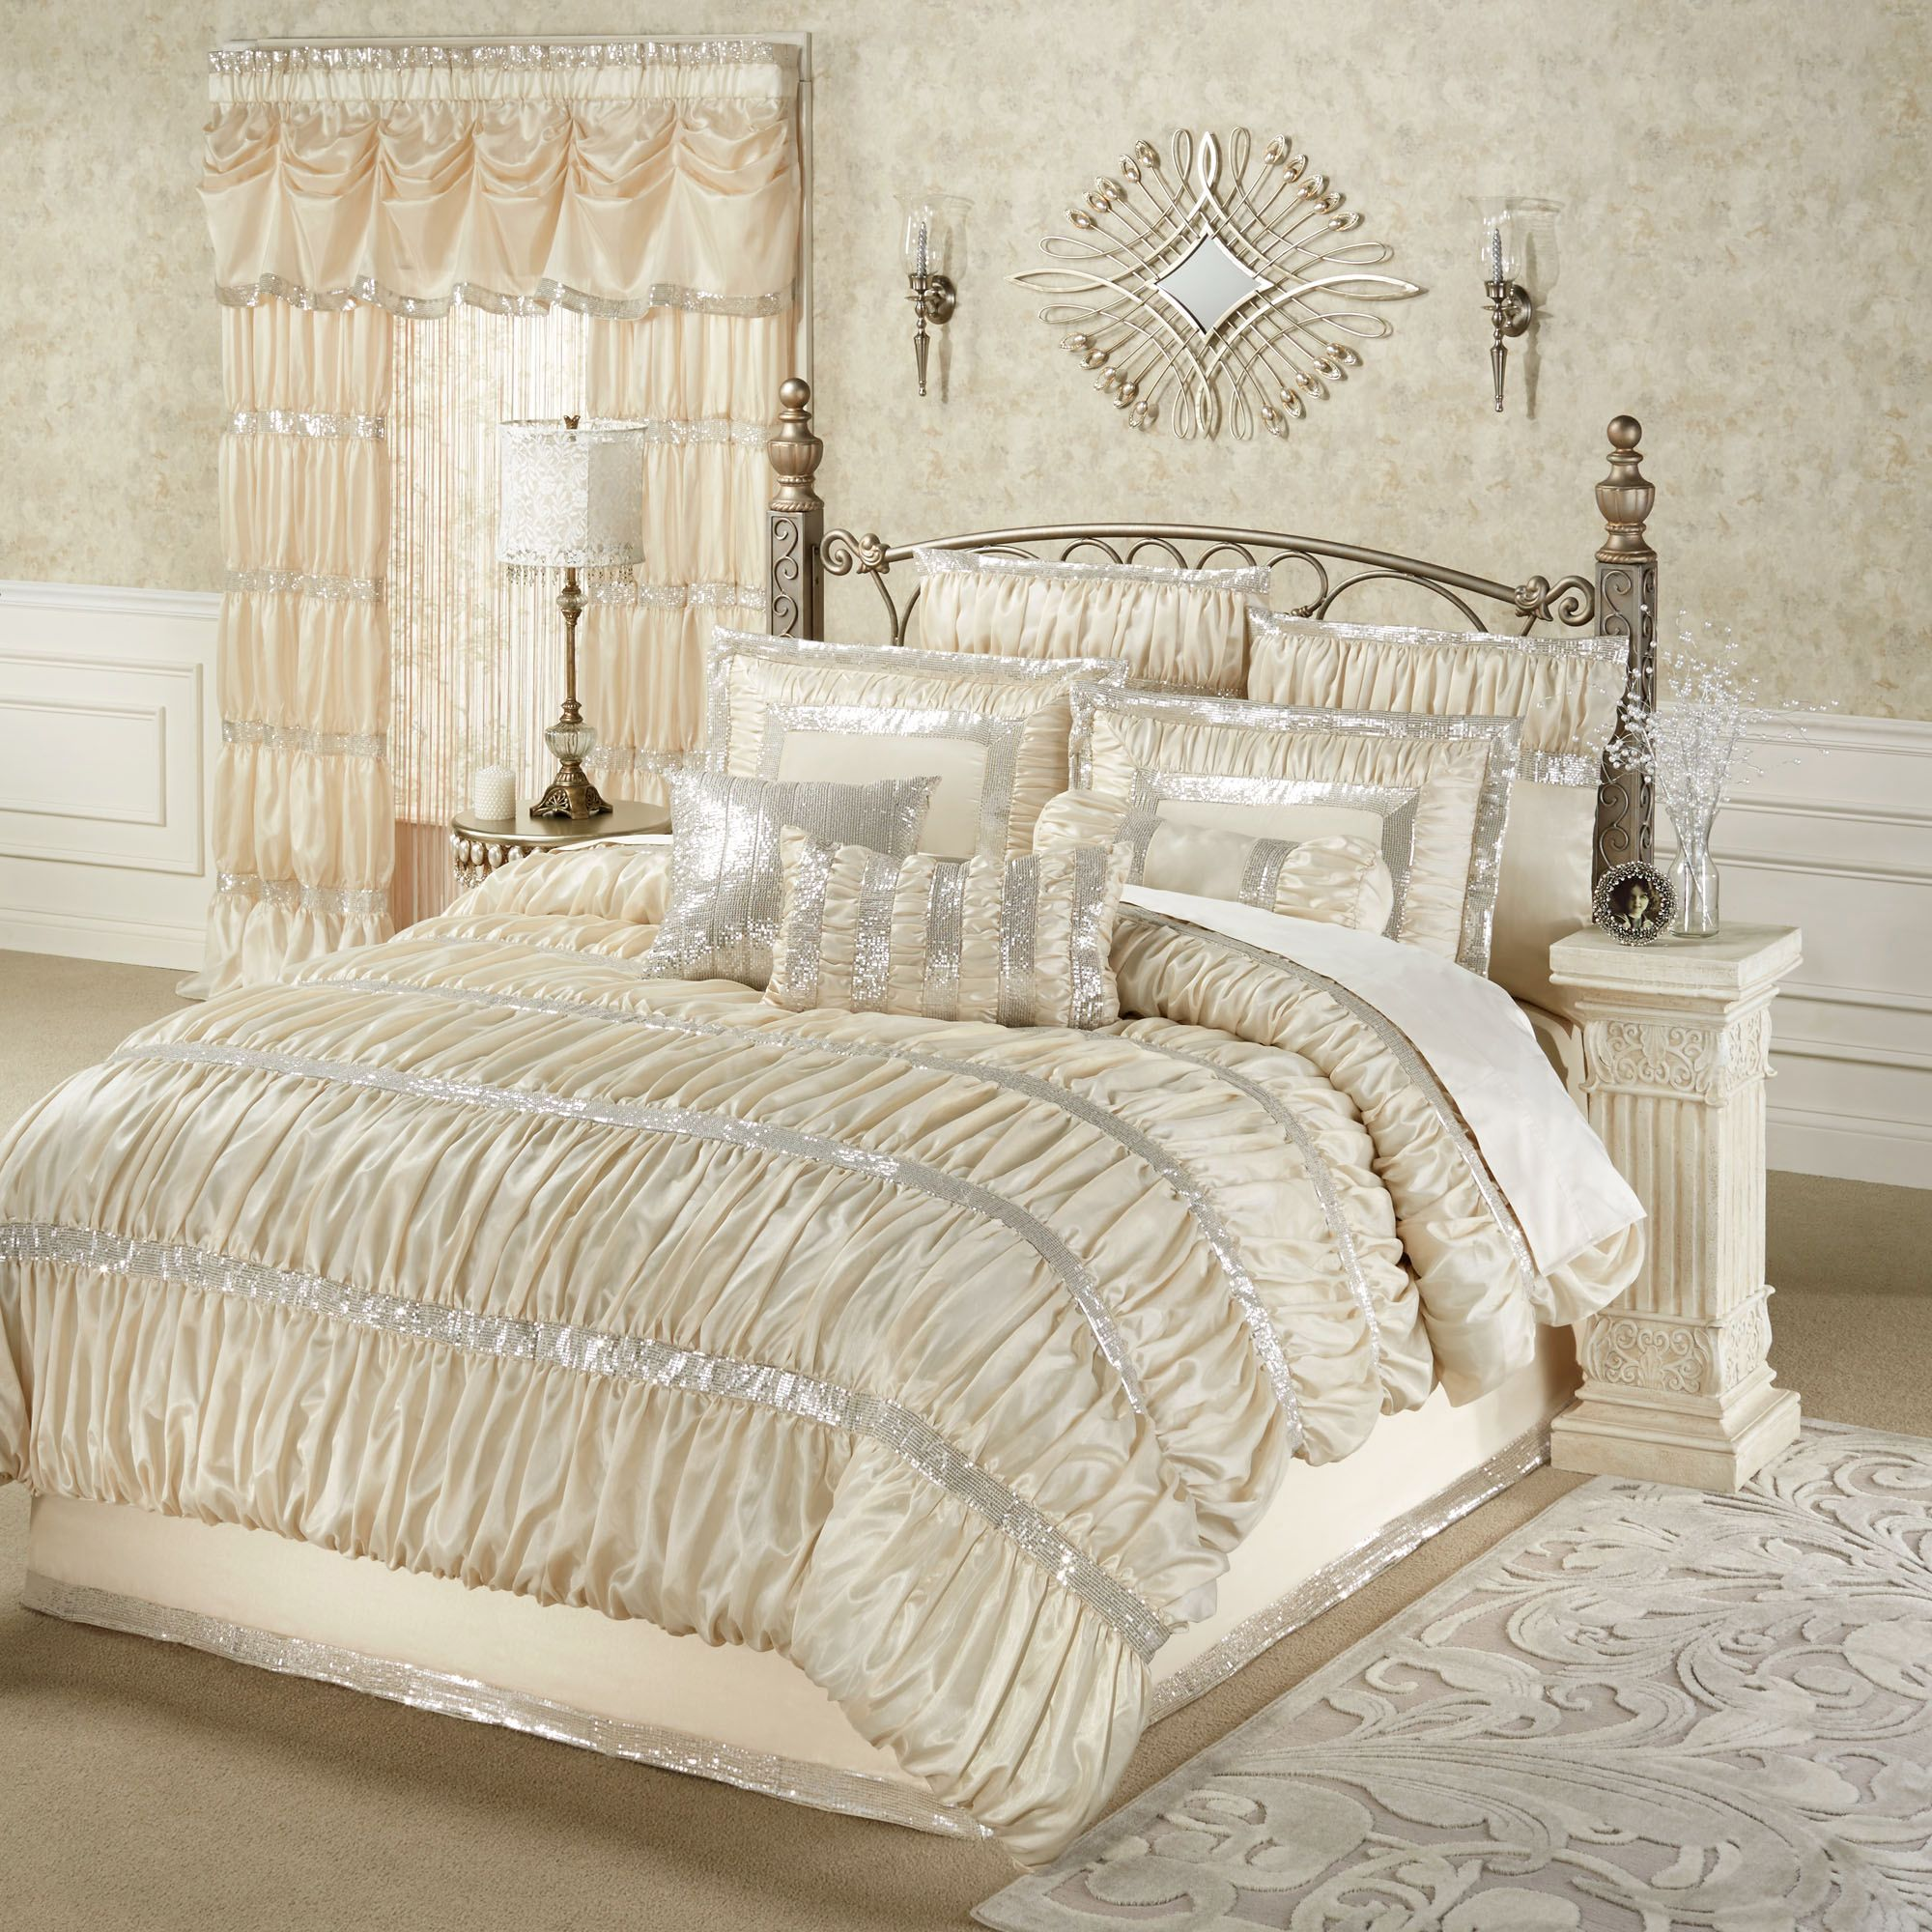 radiance shirred faux silk comforter bedding from touch of class httpwwwtouchofclasscomradiance comforter set champagnepu003 001 - Touch Of Class Bedding